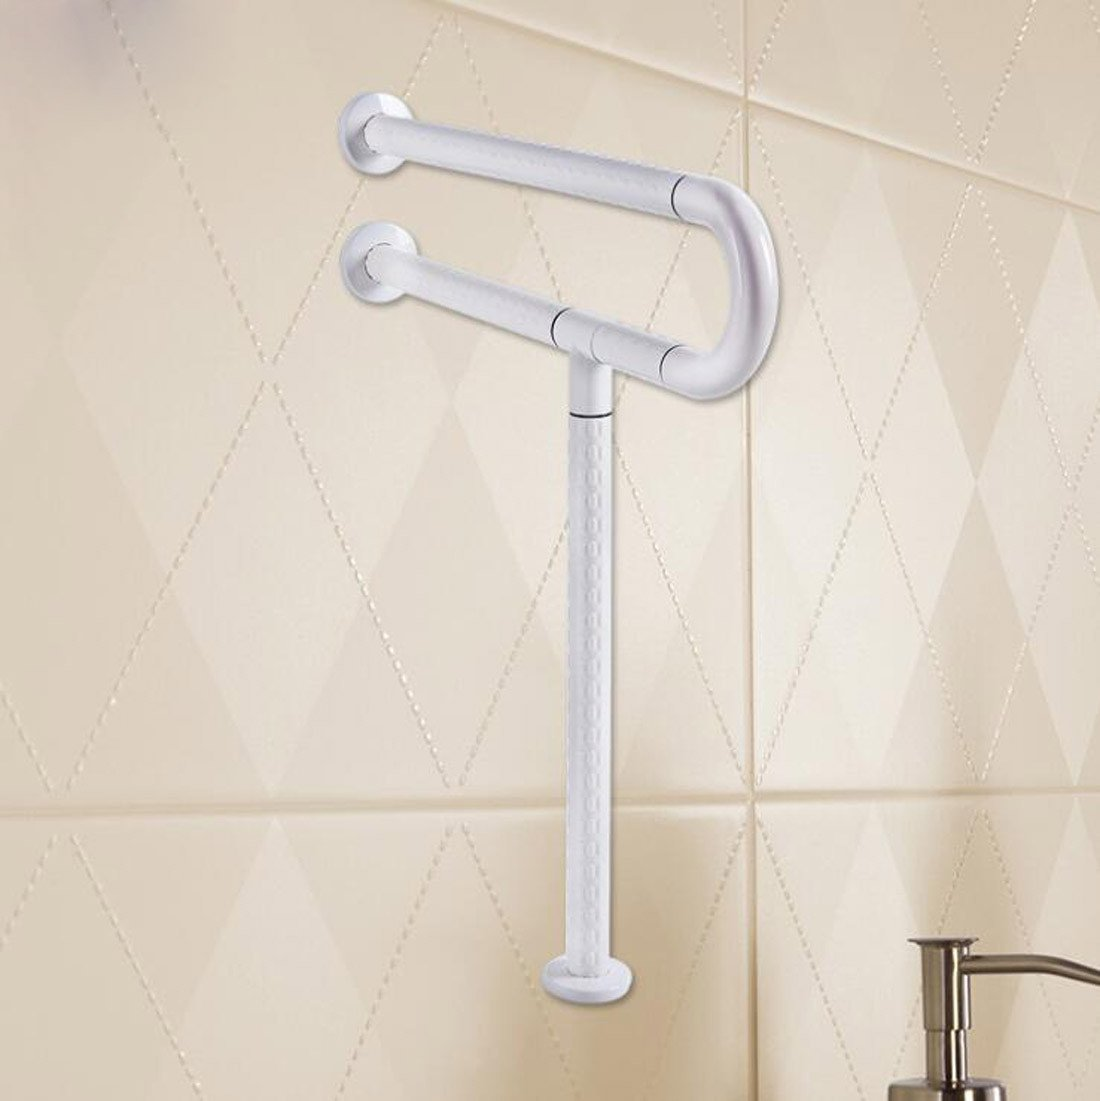 MDRW-Safety Handrail Toilet Barrier Free Toilet Bathroom Handle Anti-Skid Toilet Toilet Armrest